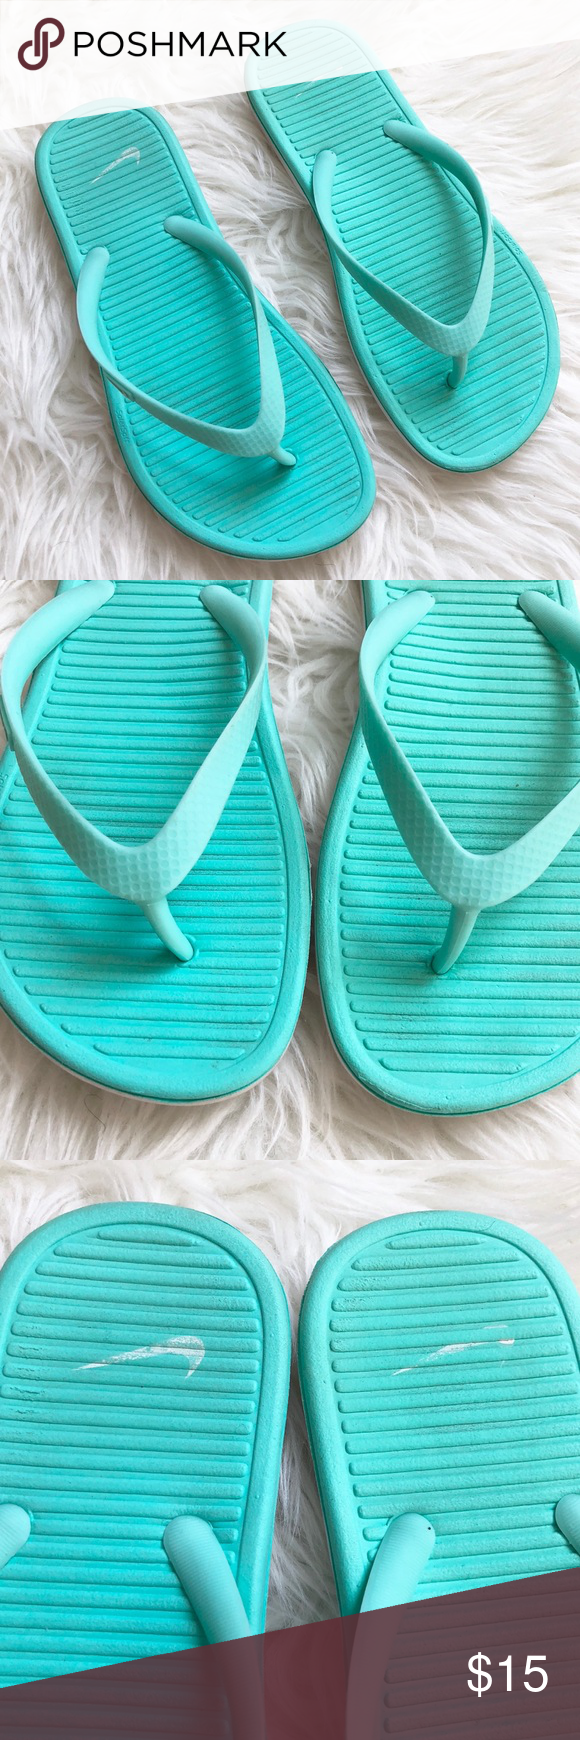 0ebb6b461db Nike Hyper Turquoise Mint Solarsoft Thong Flipflop Great used condition  only worn a handful of times. Super comfortable. Nike Shoes Sandals